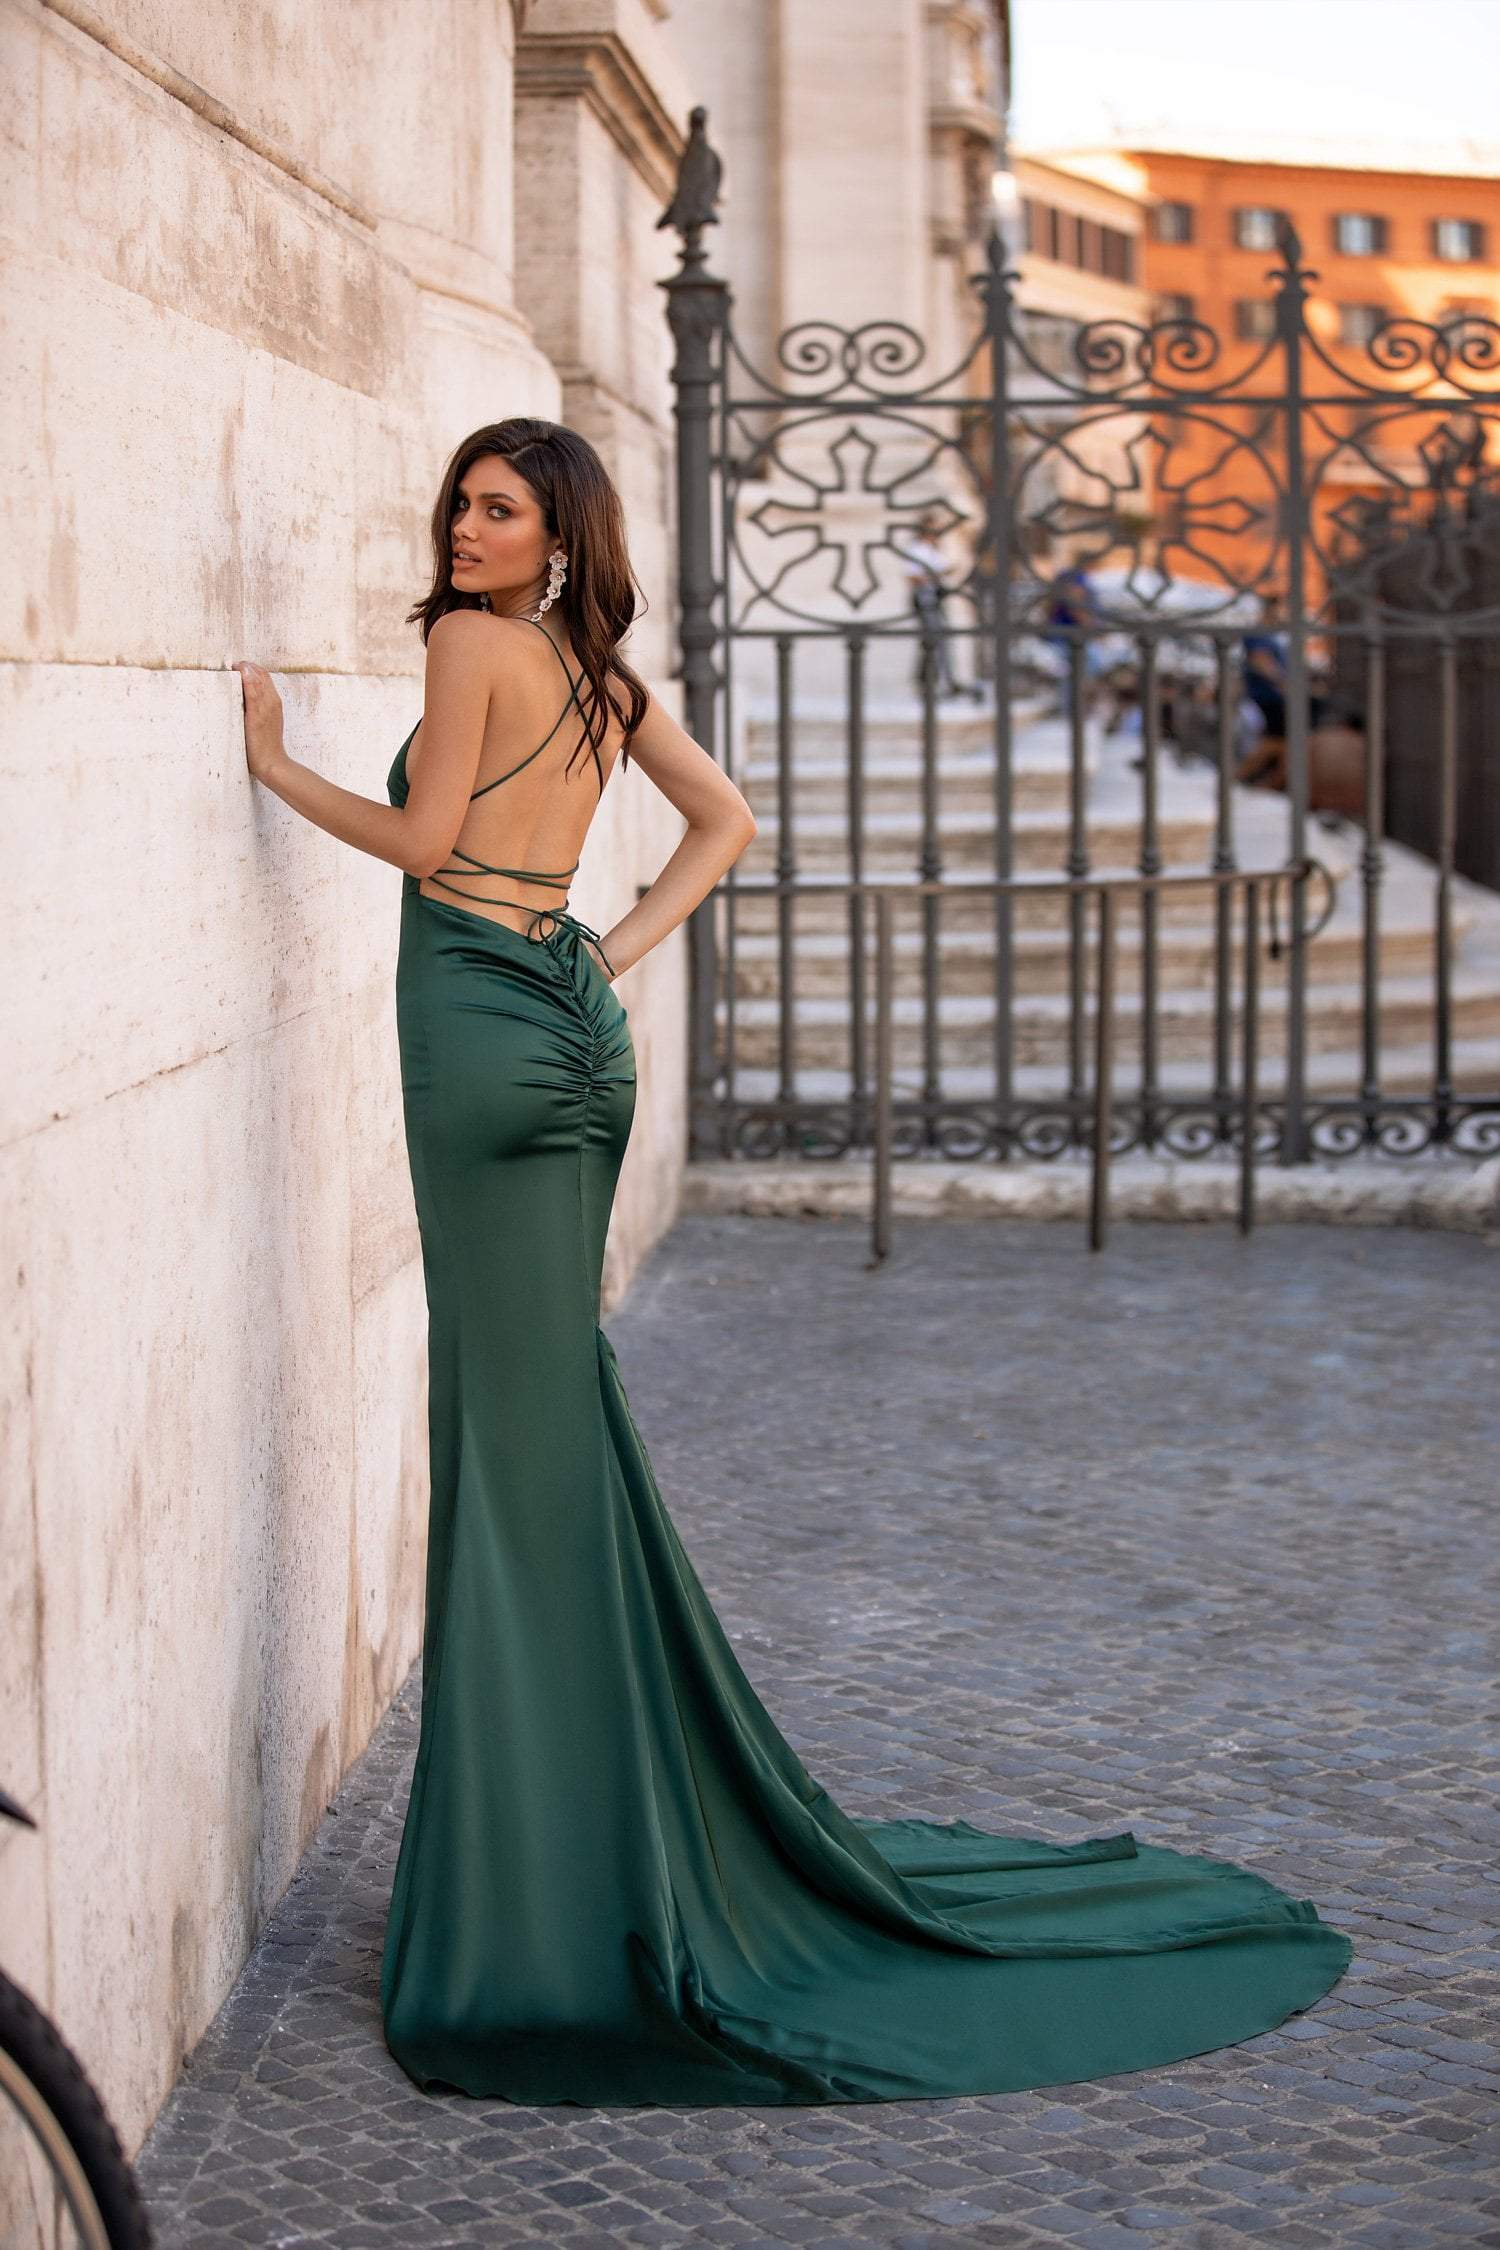 Luciella - Emerald Satin Mermaid Gown with Lace-Up Back & Side Slit